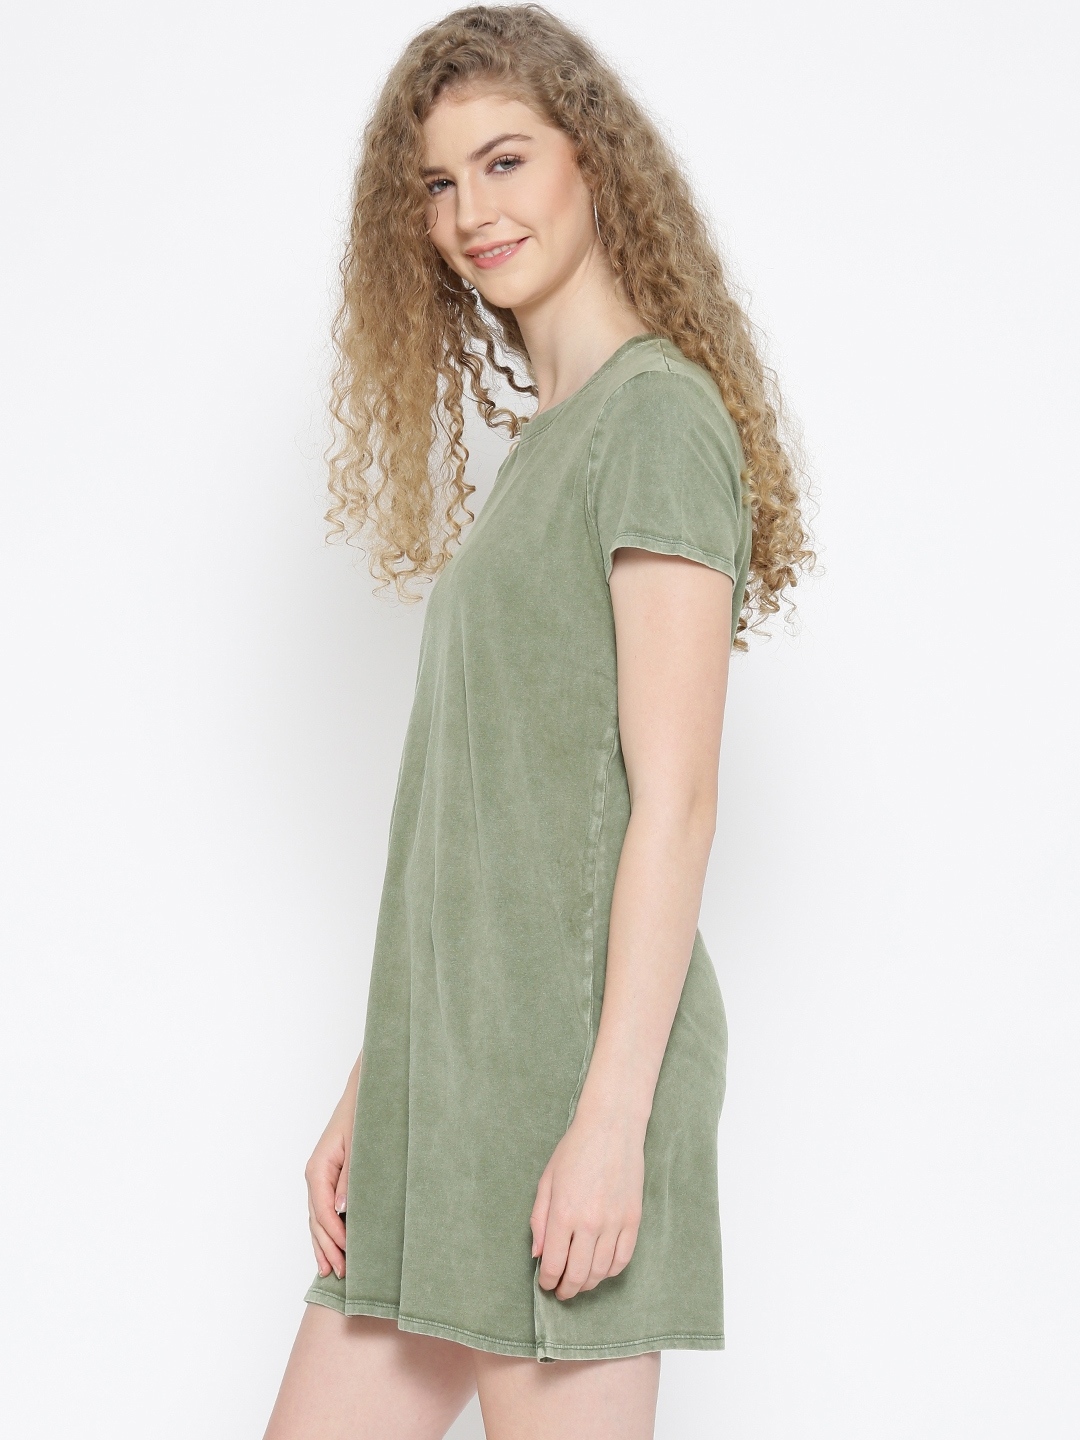 1aa78cc68845 Buy FOREVER 21 Women Olive Green Solid T Shirt Dress - Dresses for ...